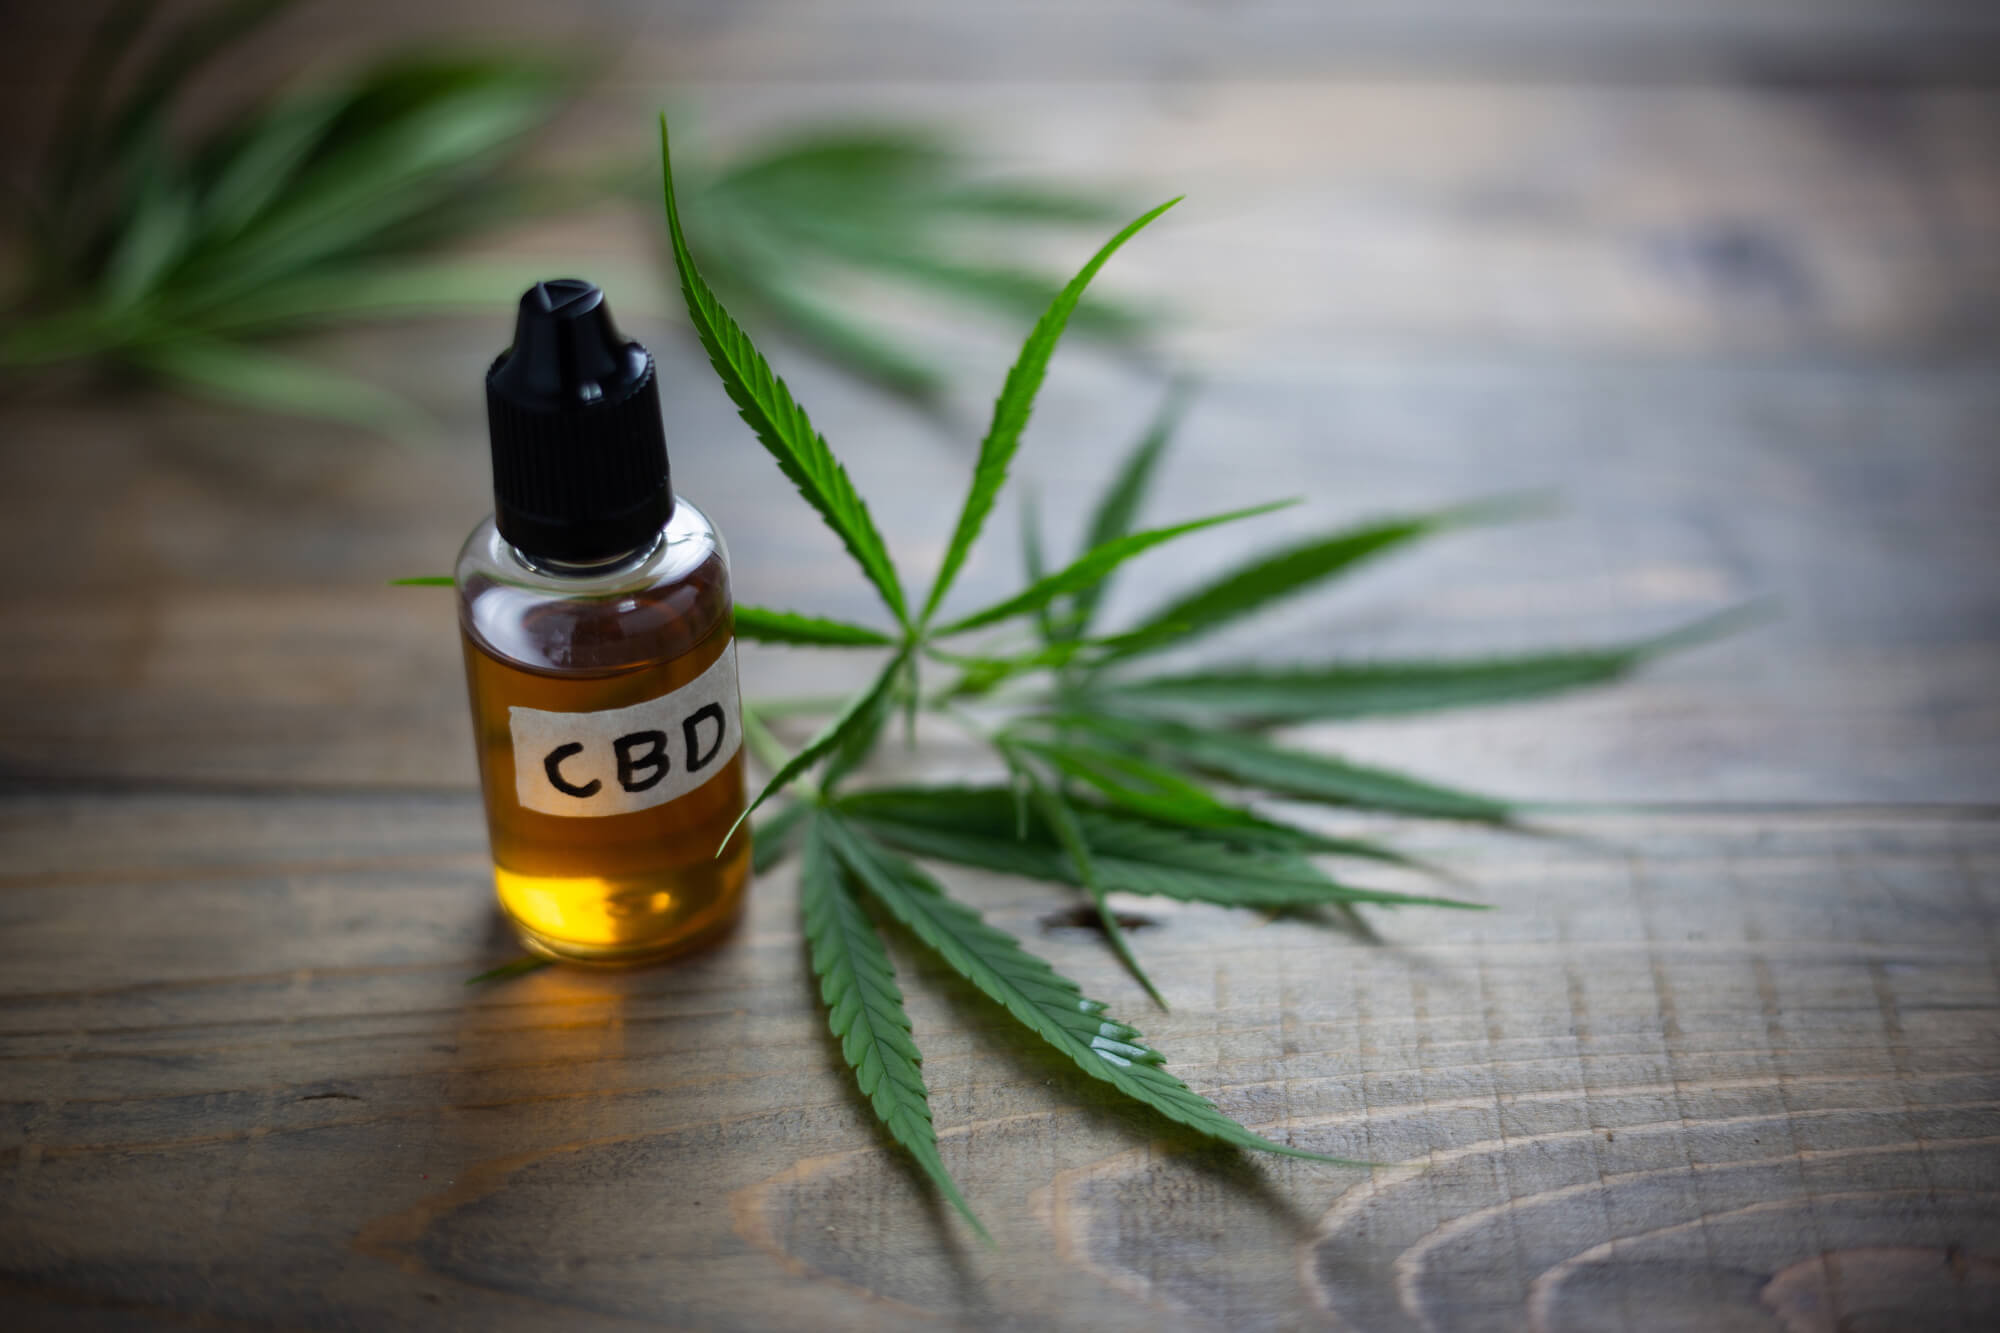 purchasing cbd oils